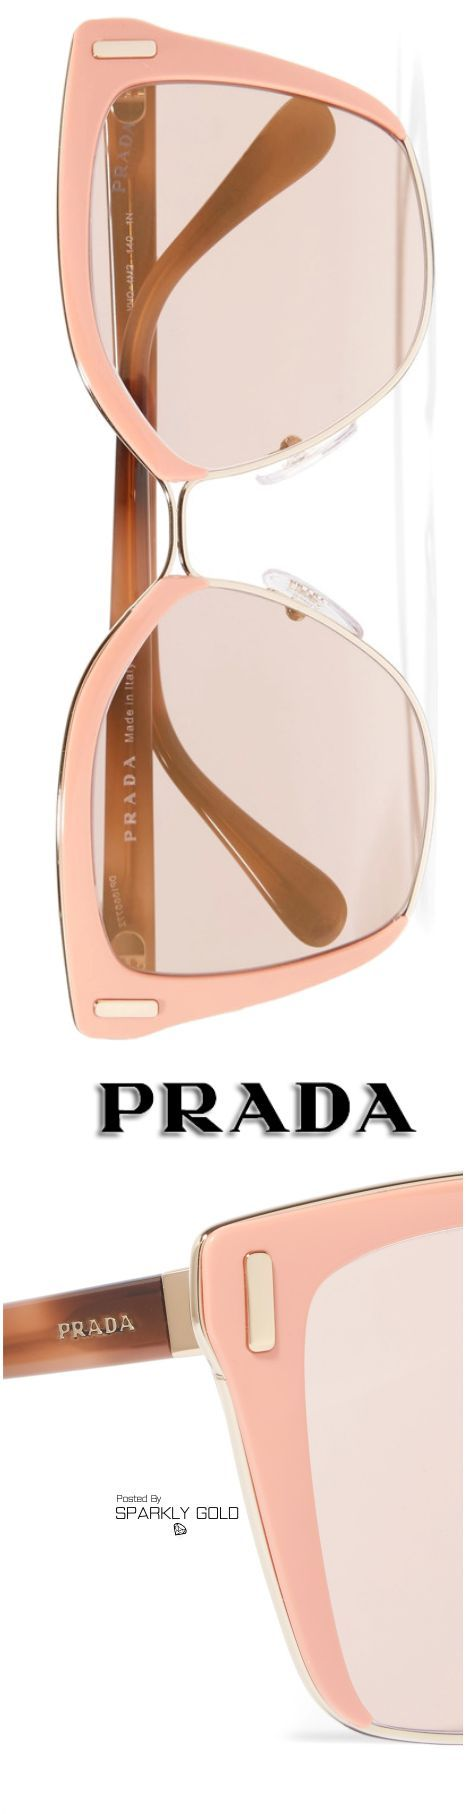 Prada -  Sale! Up to 75% OFF! Shot at Stylizio for women's and men's designer handbags, luxury sunglasses, watches, jewelry, purses, wallets, clothes, underwear